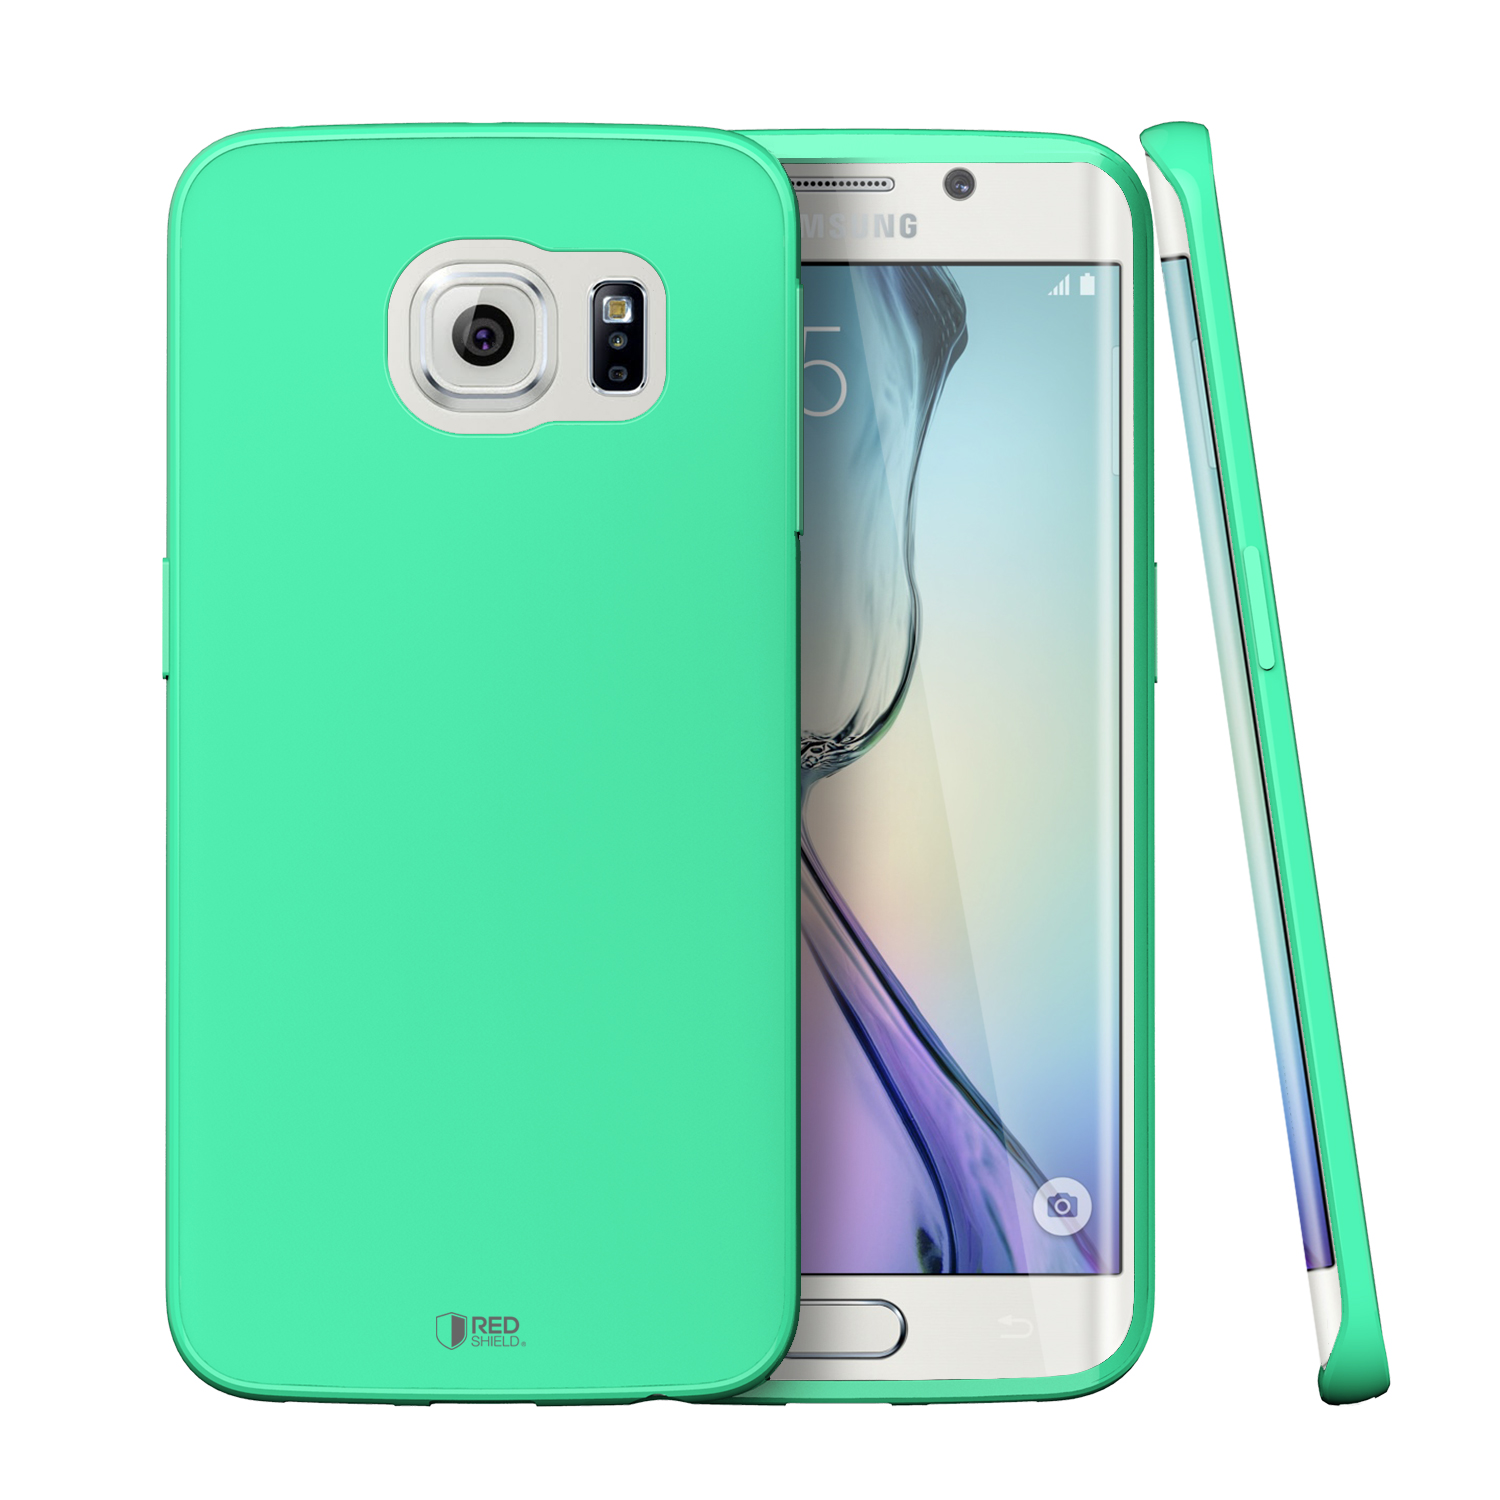 Samsung Galaxy S6 Edge Case,  [Fresh Mint]  Slim & Flexible Anti-shock Crystal Silicone Protective TPU Gel Skin Case Cover